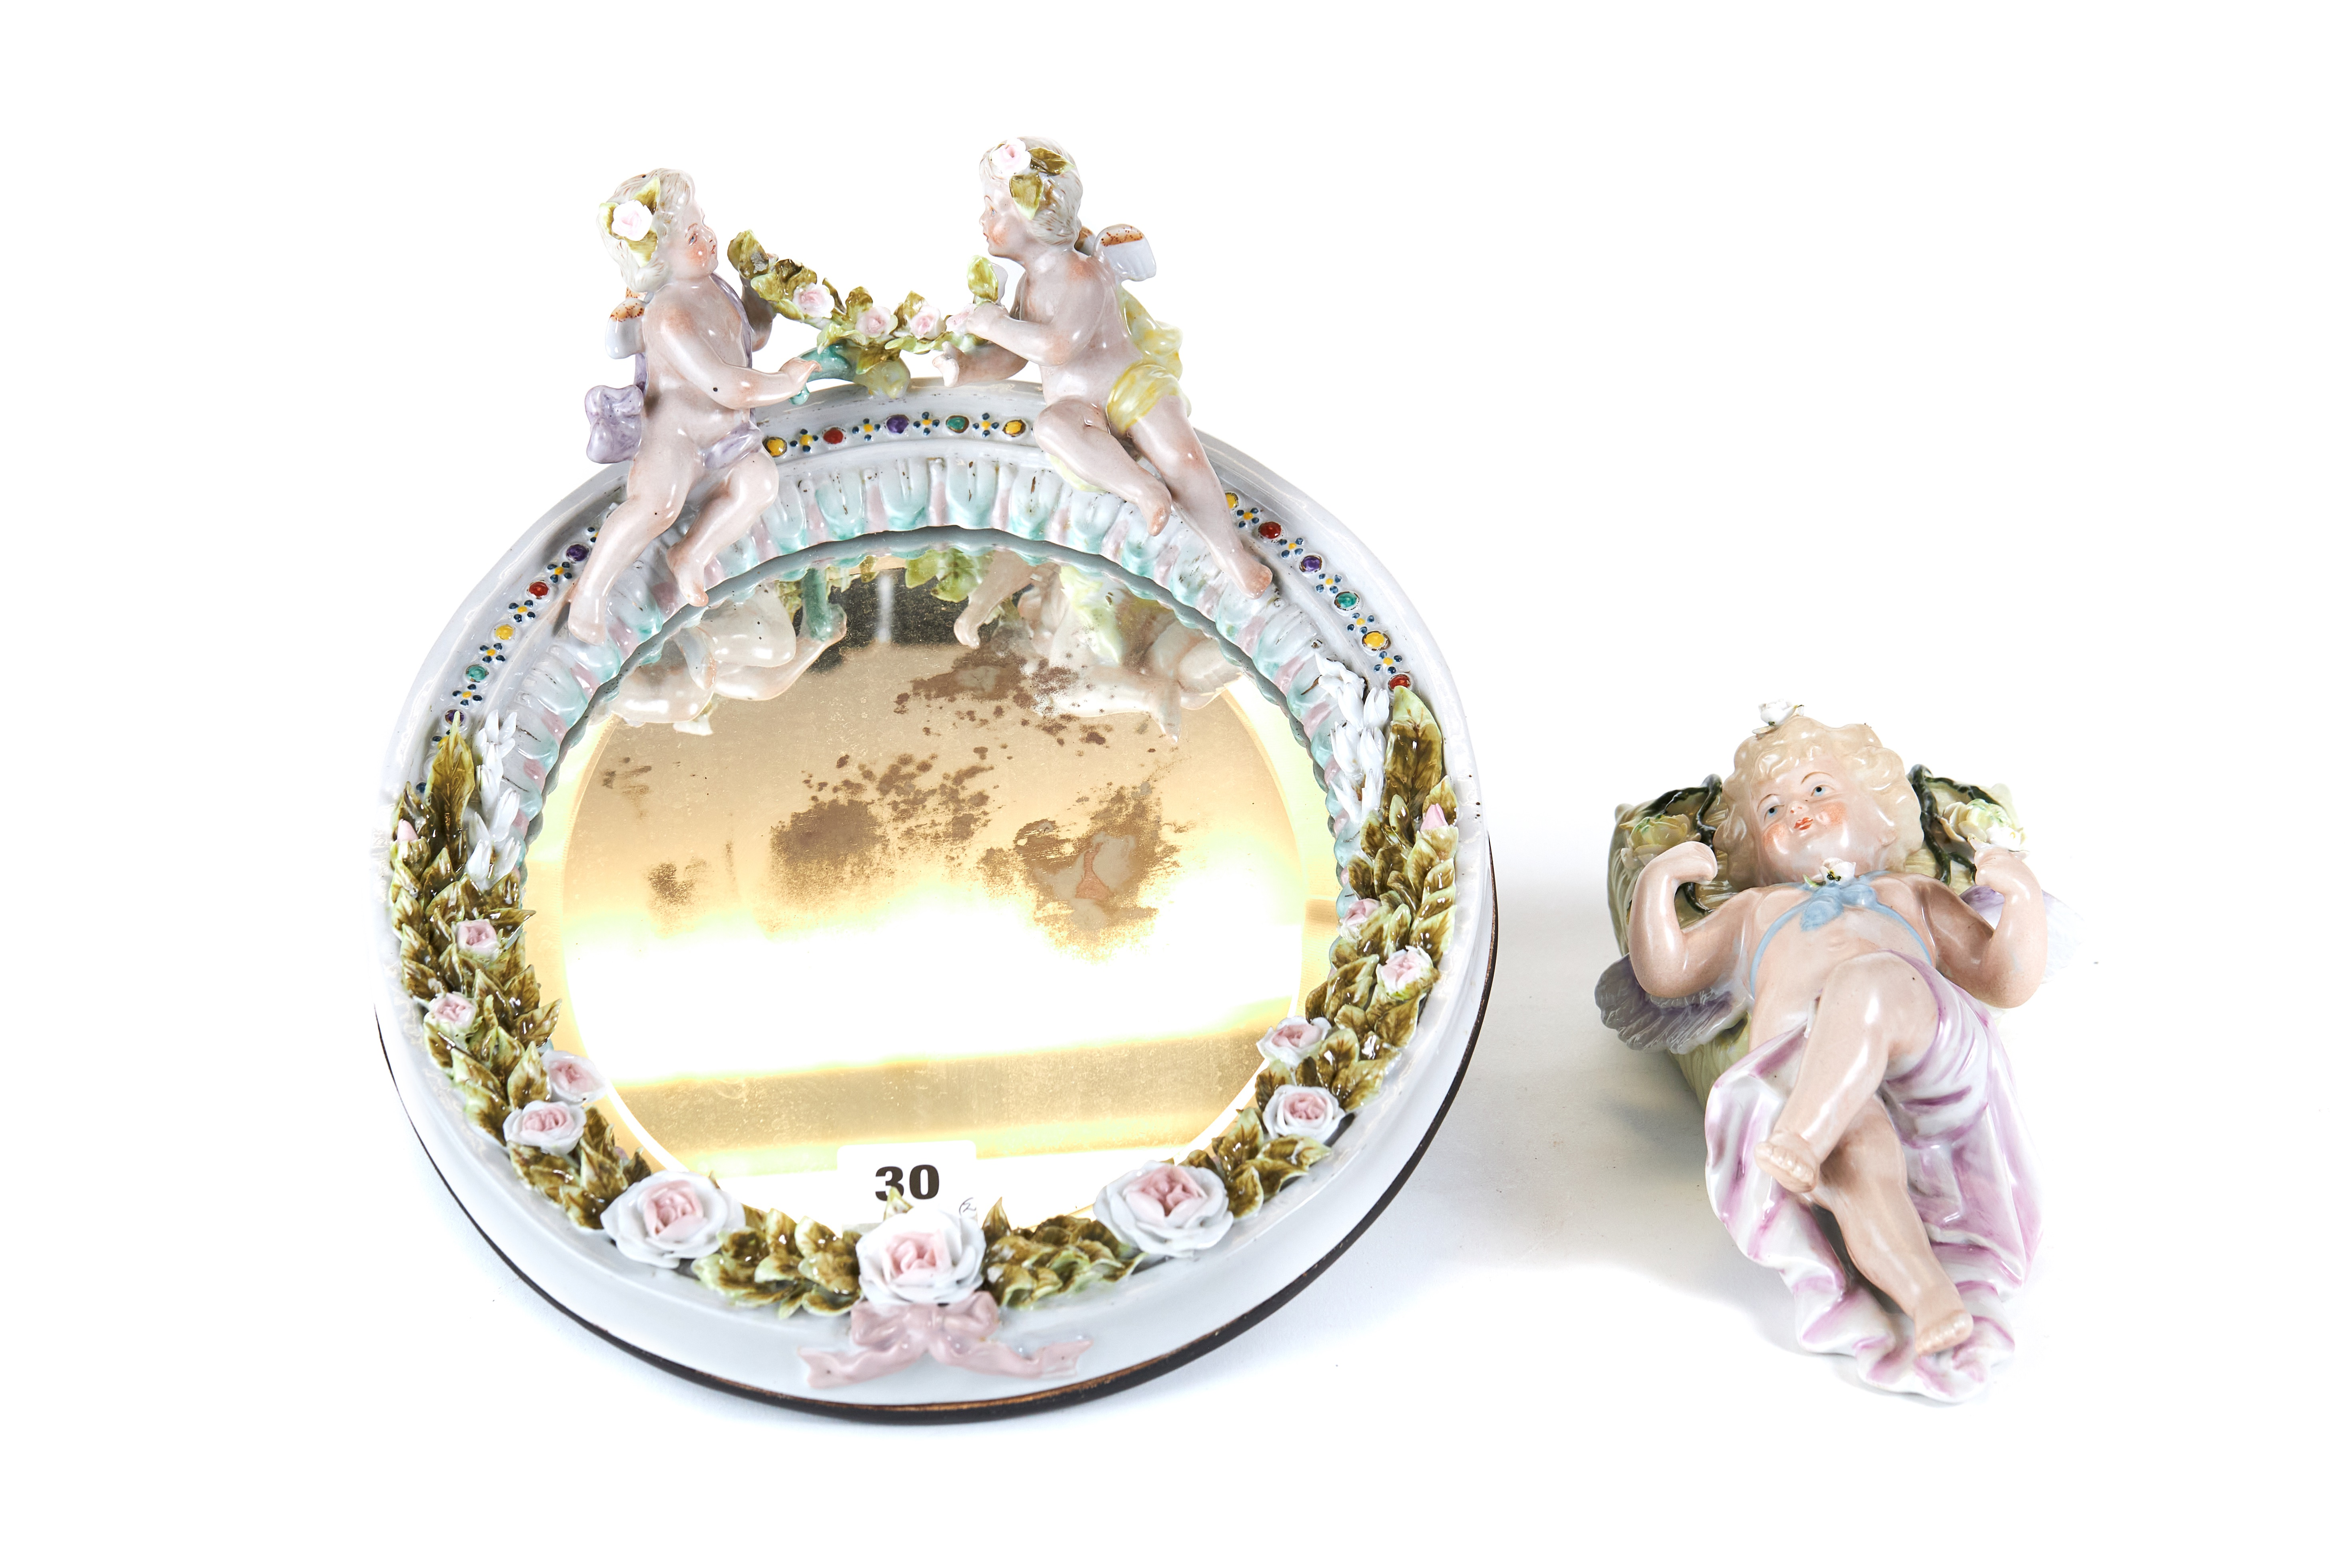 Lot 30 - A LATE 19TH CENTURY OVAL CONTINENTAL PORCELAIN WALL MIRROR the flower encrusted frame surmounted by